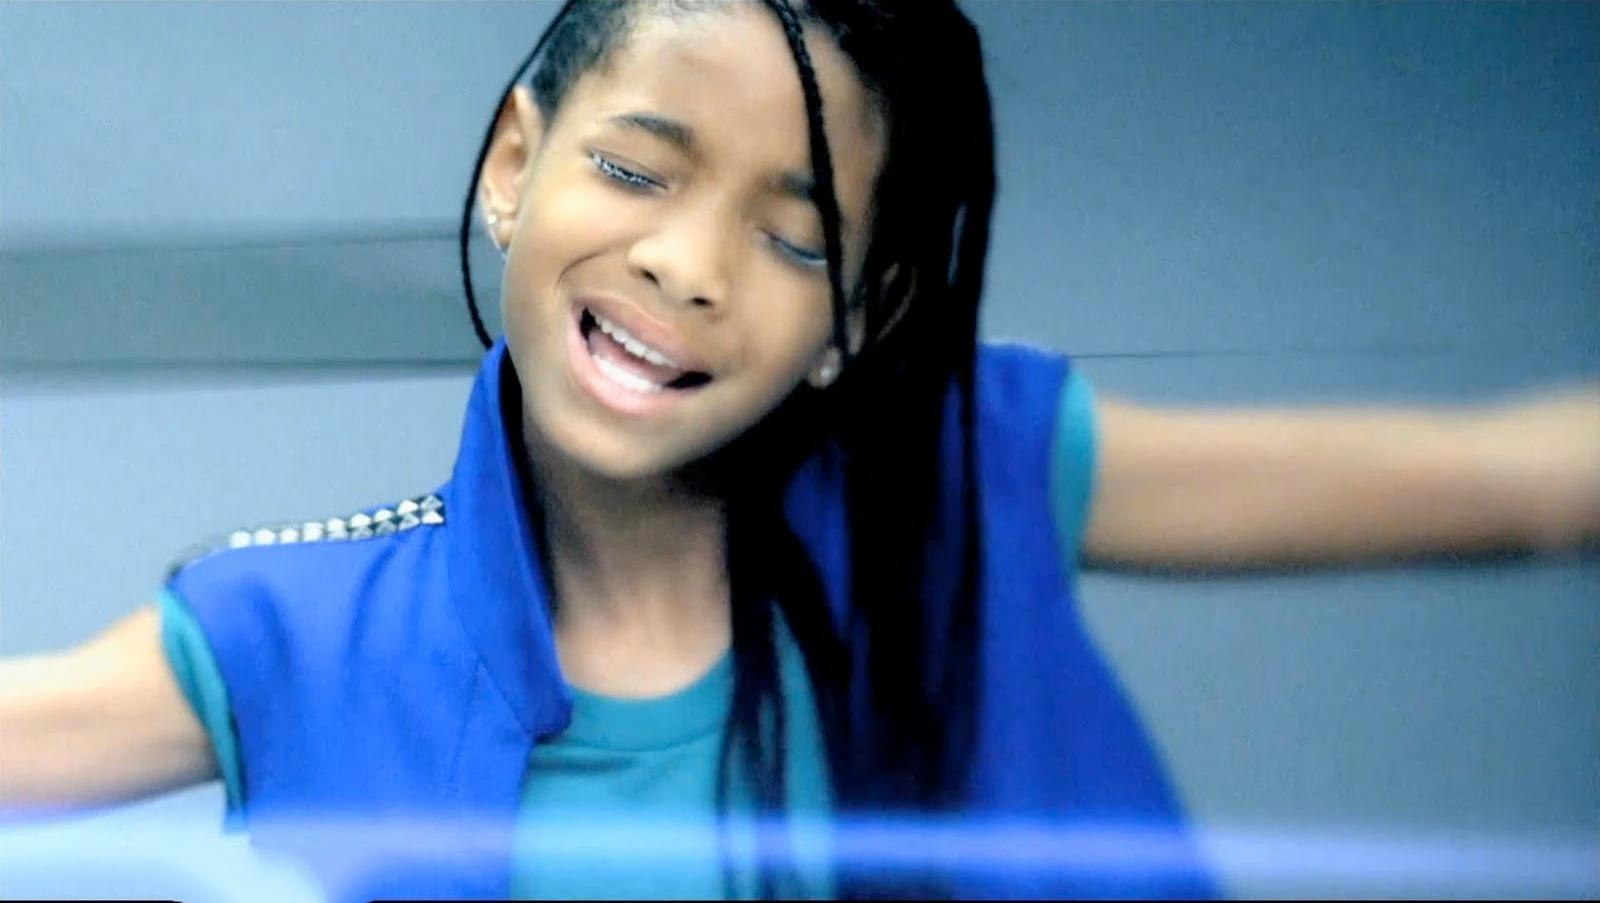 willow-smith-whip-my-hair-1534396130378-1534396132500.jpg